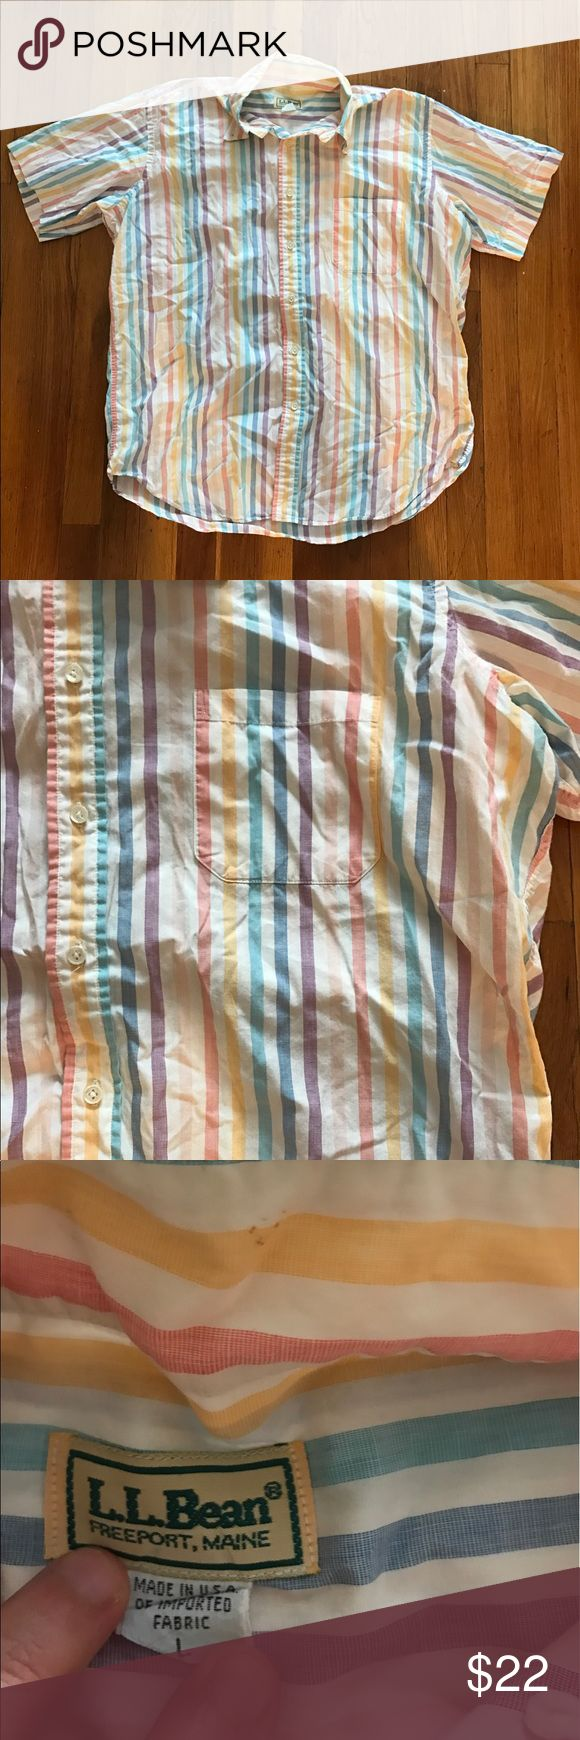 LL Bean Men's Striped Short sleeve Retro shirt L Nice shirt! One small stain pictured, I haven't tried to remove it. A bit wrinkled from storage. Otherwise good used condition. L.L. Bean Shirts Casual Button Down Shirts